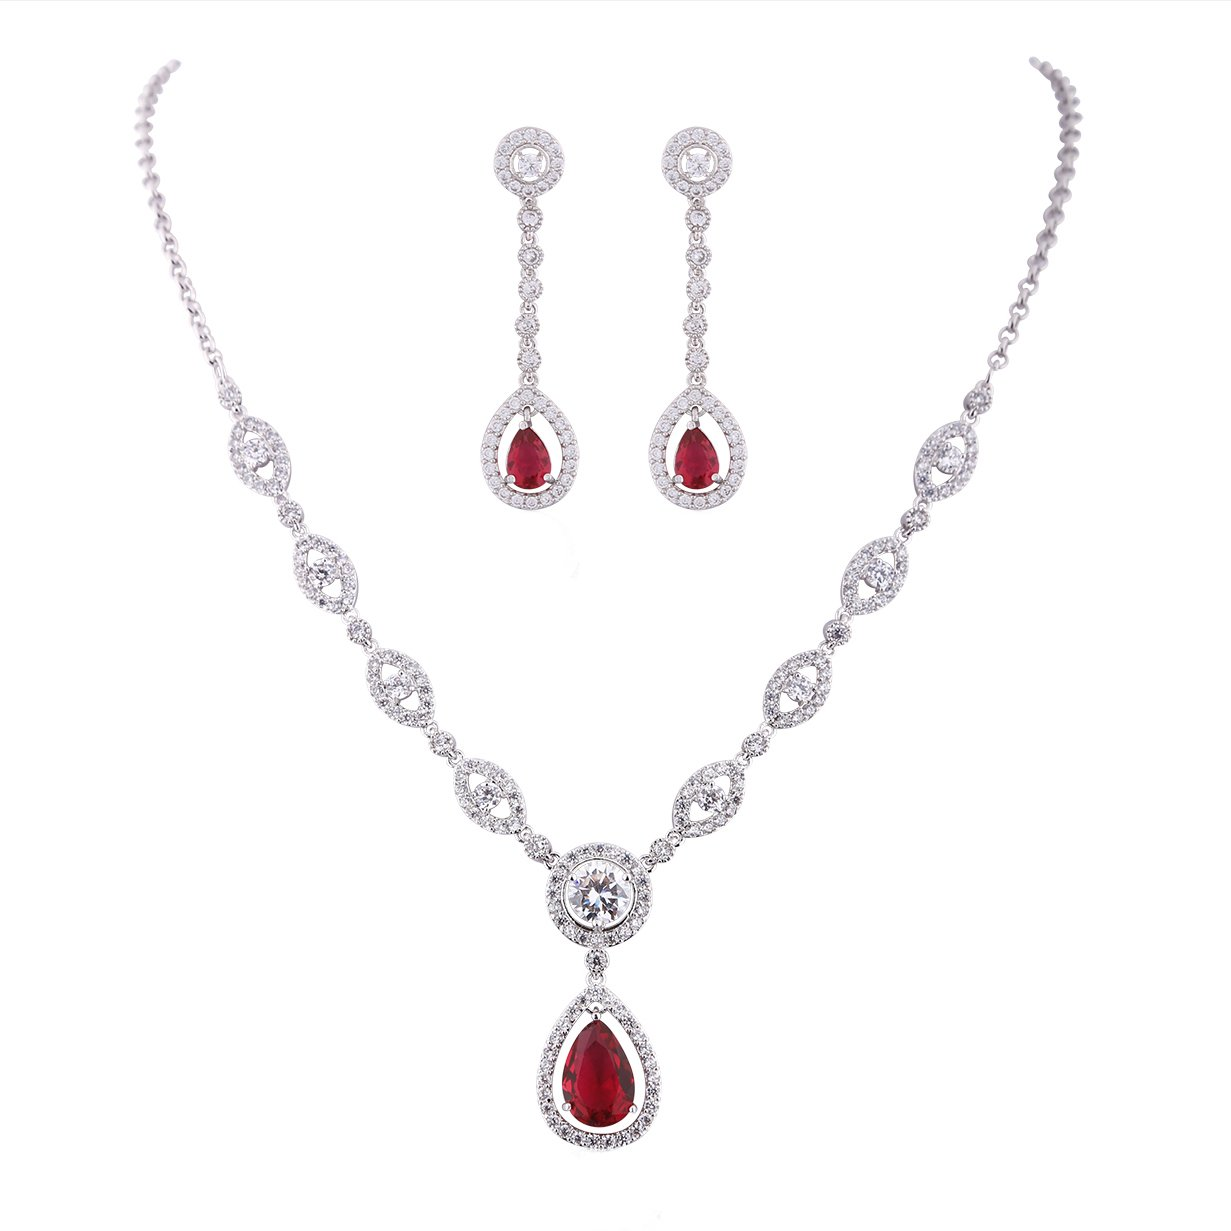 GULICX AAA Cubic Zirconia CZ Women's Party Jewelry Set Fashion Earrings Pendant Necklace Silver Plated Gelei Jewelry Co. Ltd. AT01a